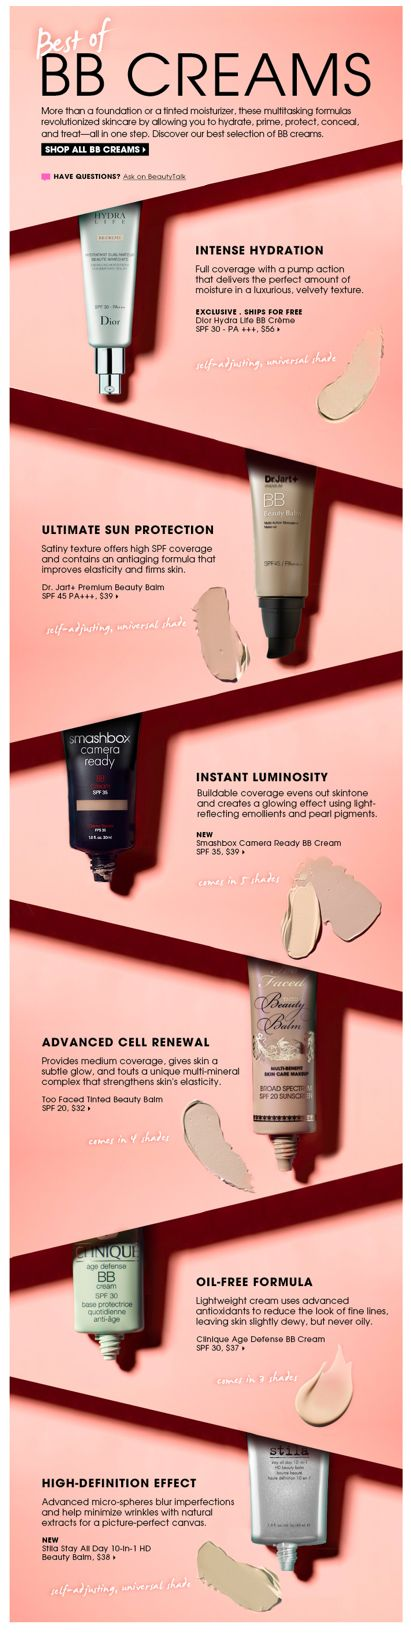 Sephora - 2012   #EmailMarketing #DigitalMarketing #EmailDesign #EmailTemplate